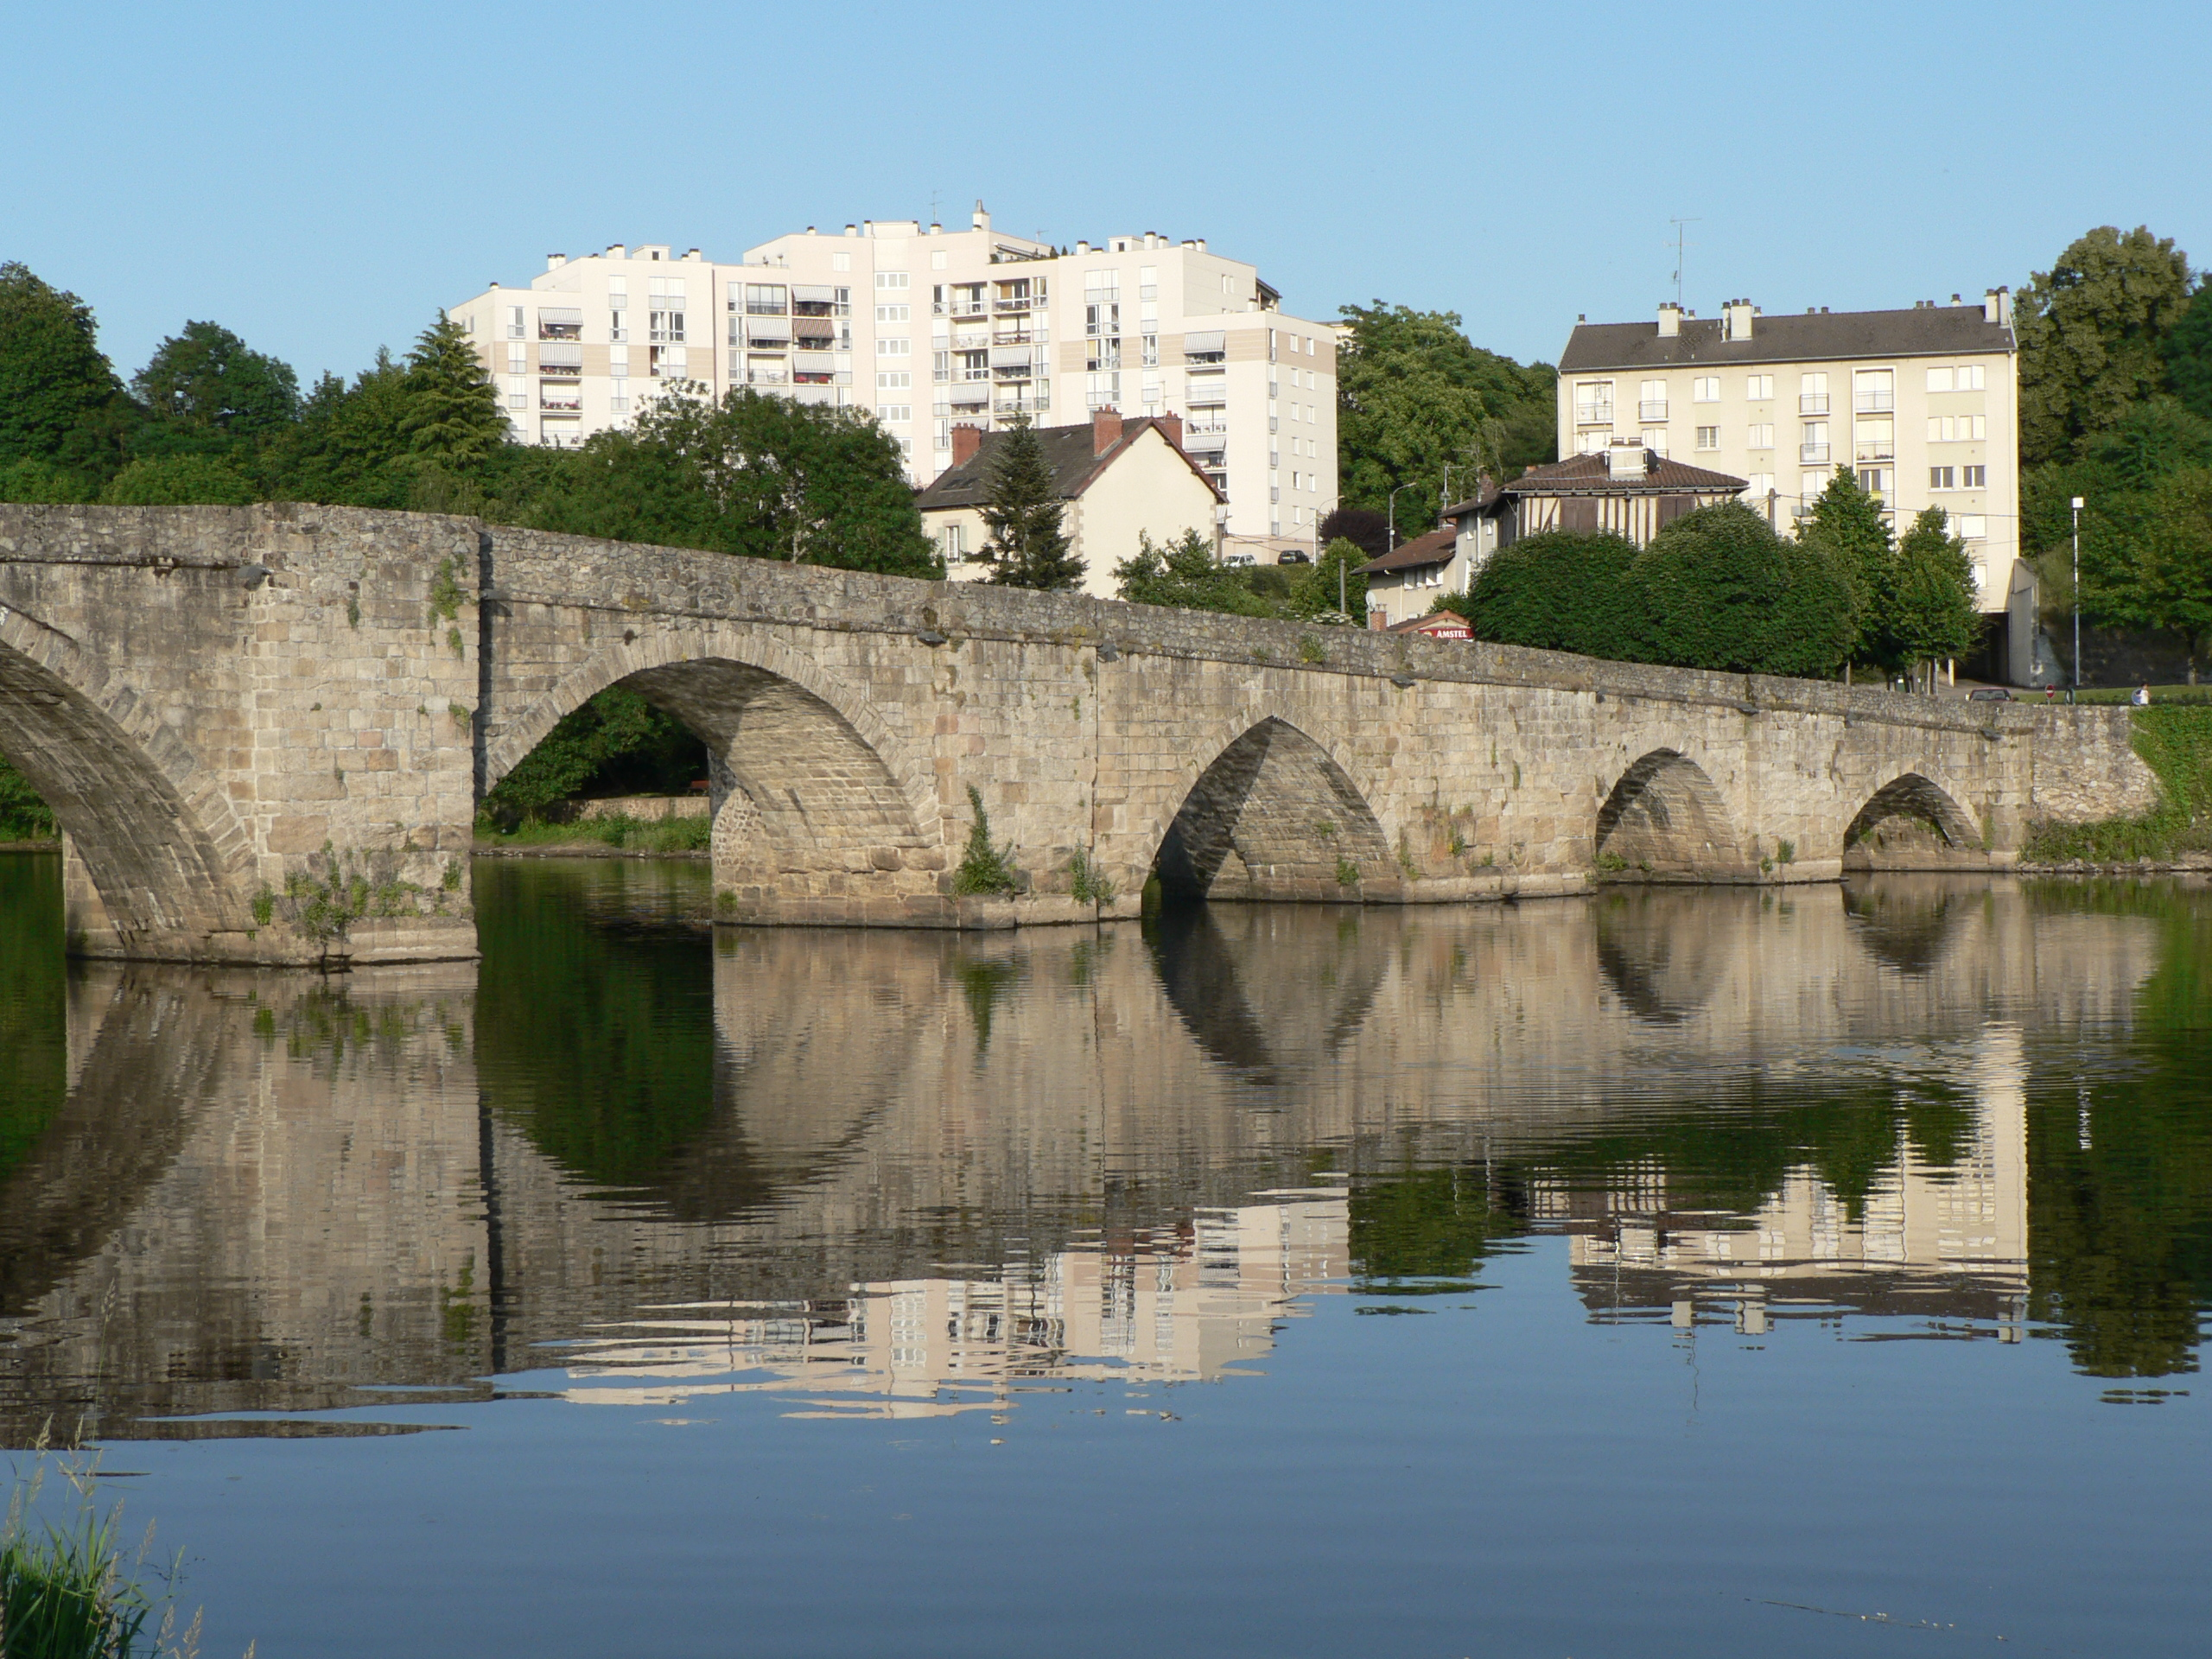 Description limoges pont saint martial